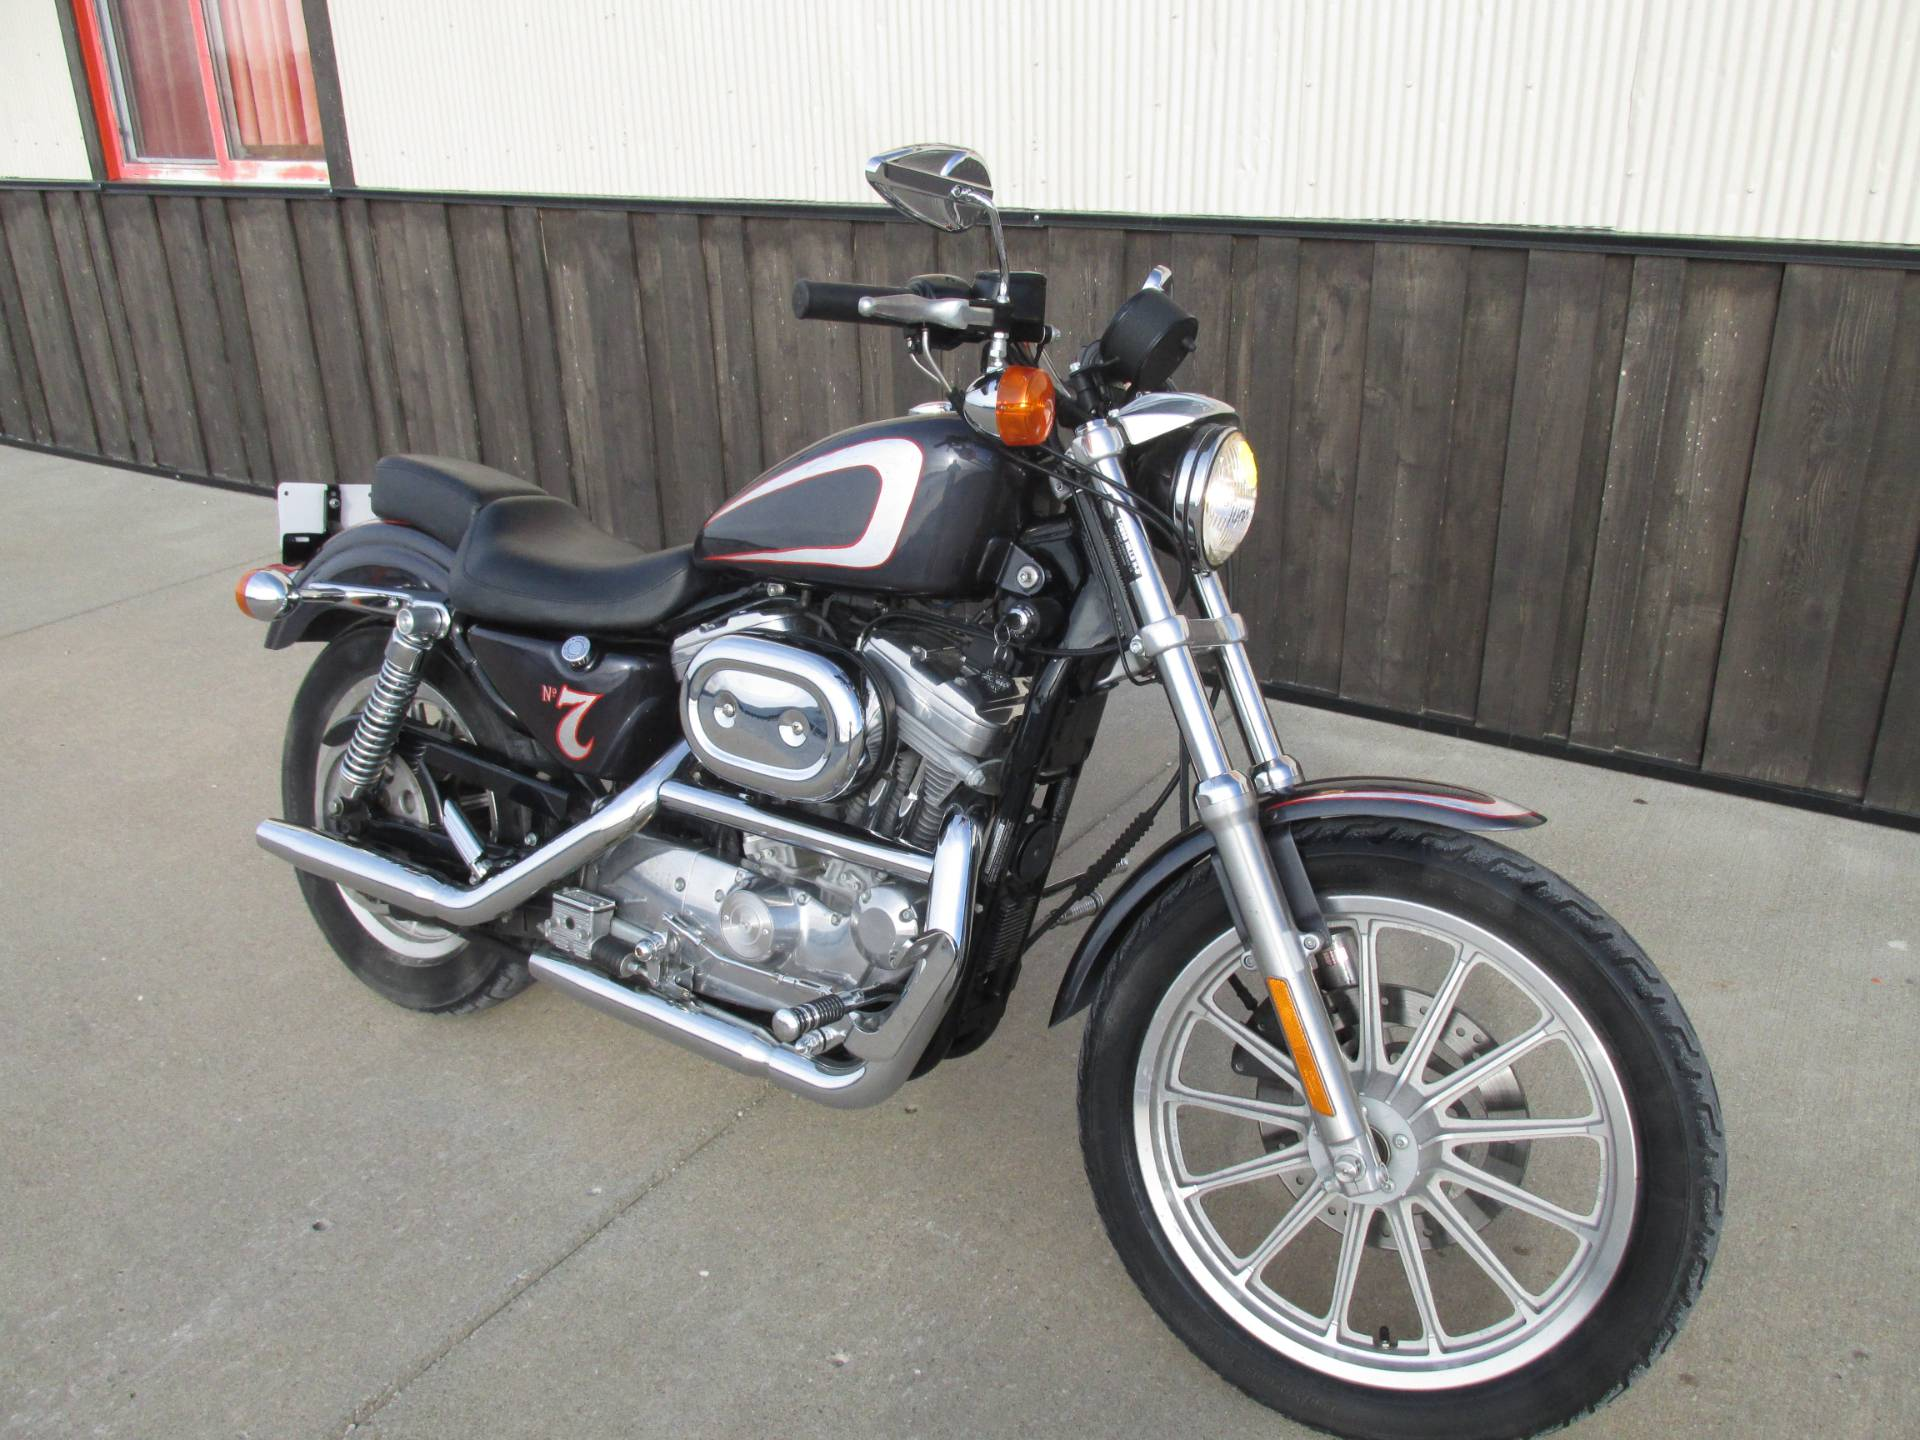 used 2001 harley davidson xlh sportster 883 motorcycles in pacific junction ia stock number. Black Bedroom Furniture Sets. Home Design Ideas